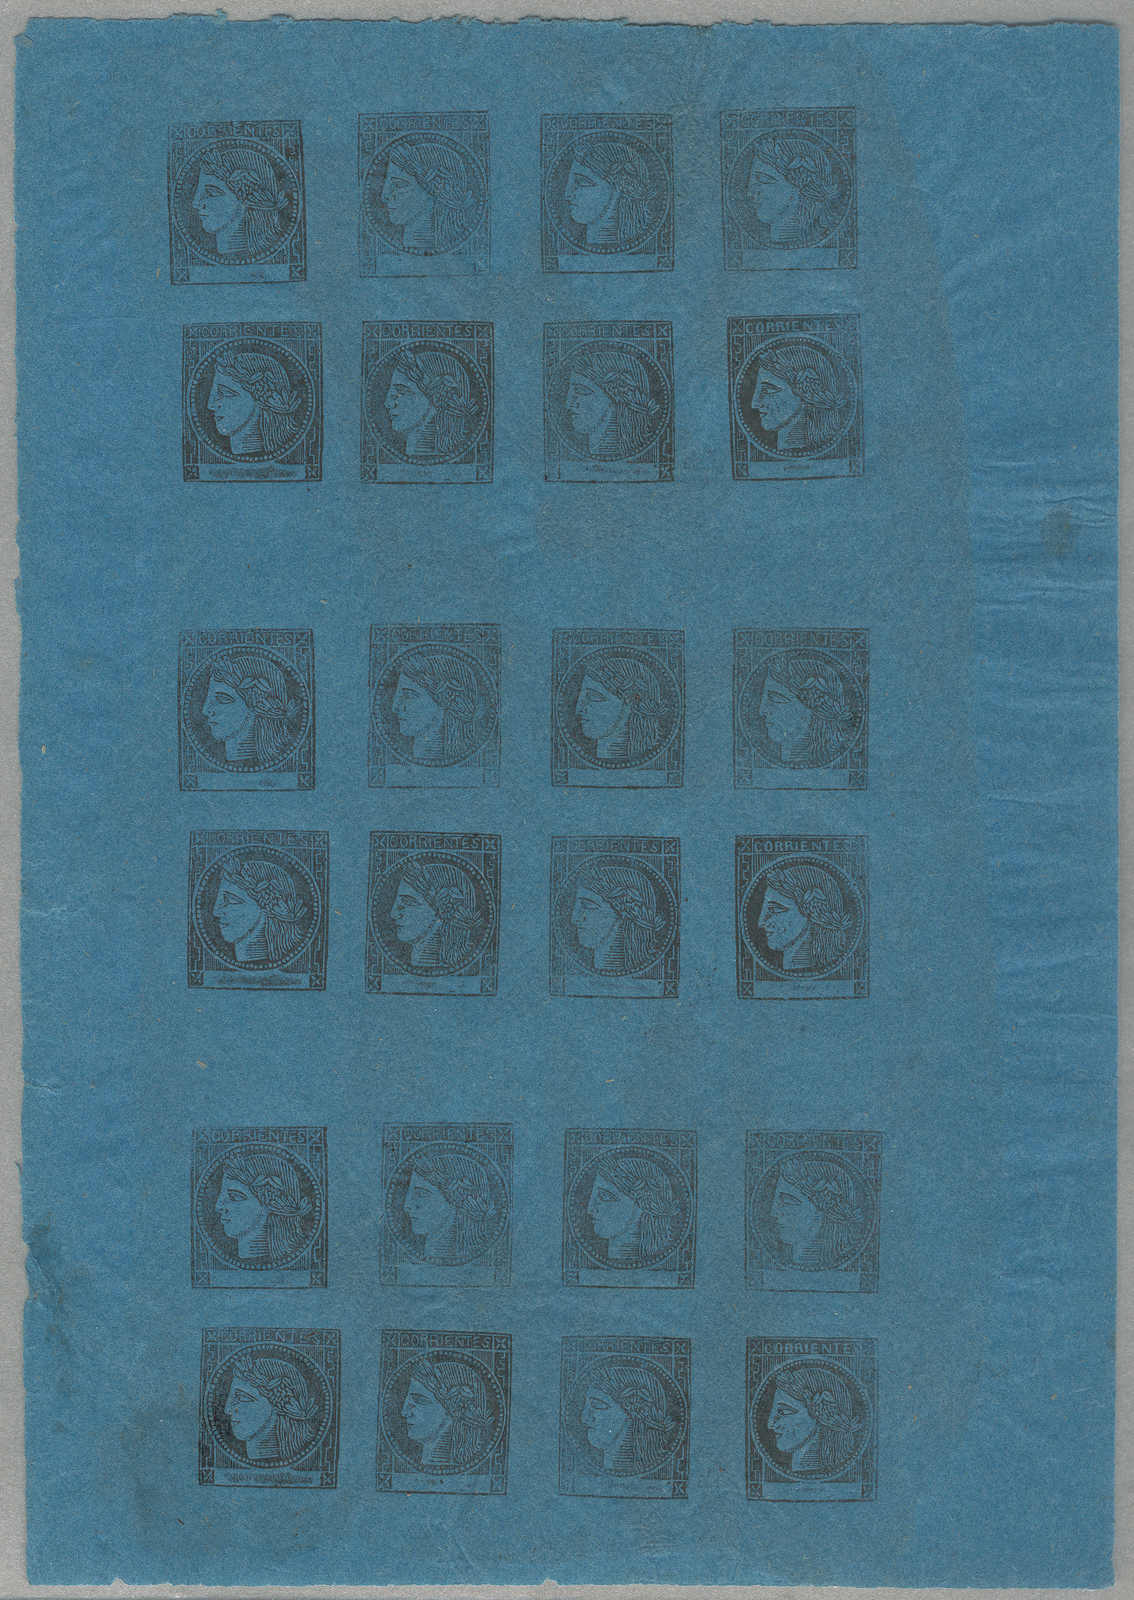 Lot 15155 - America, South/Middle/Caribbean Argentina -  classicphil GmbH 8'th classicphil Auction - Day 2